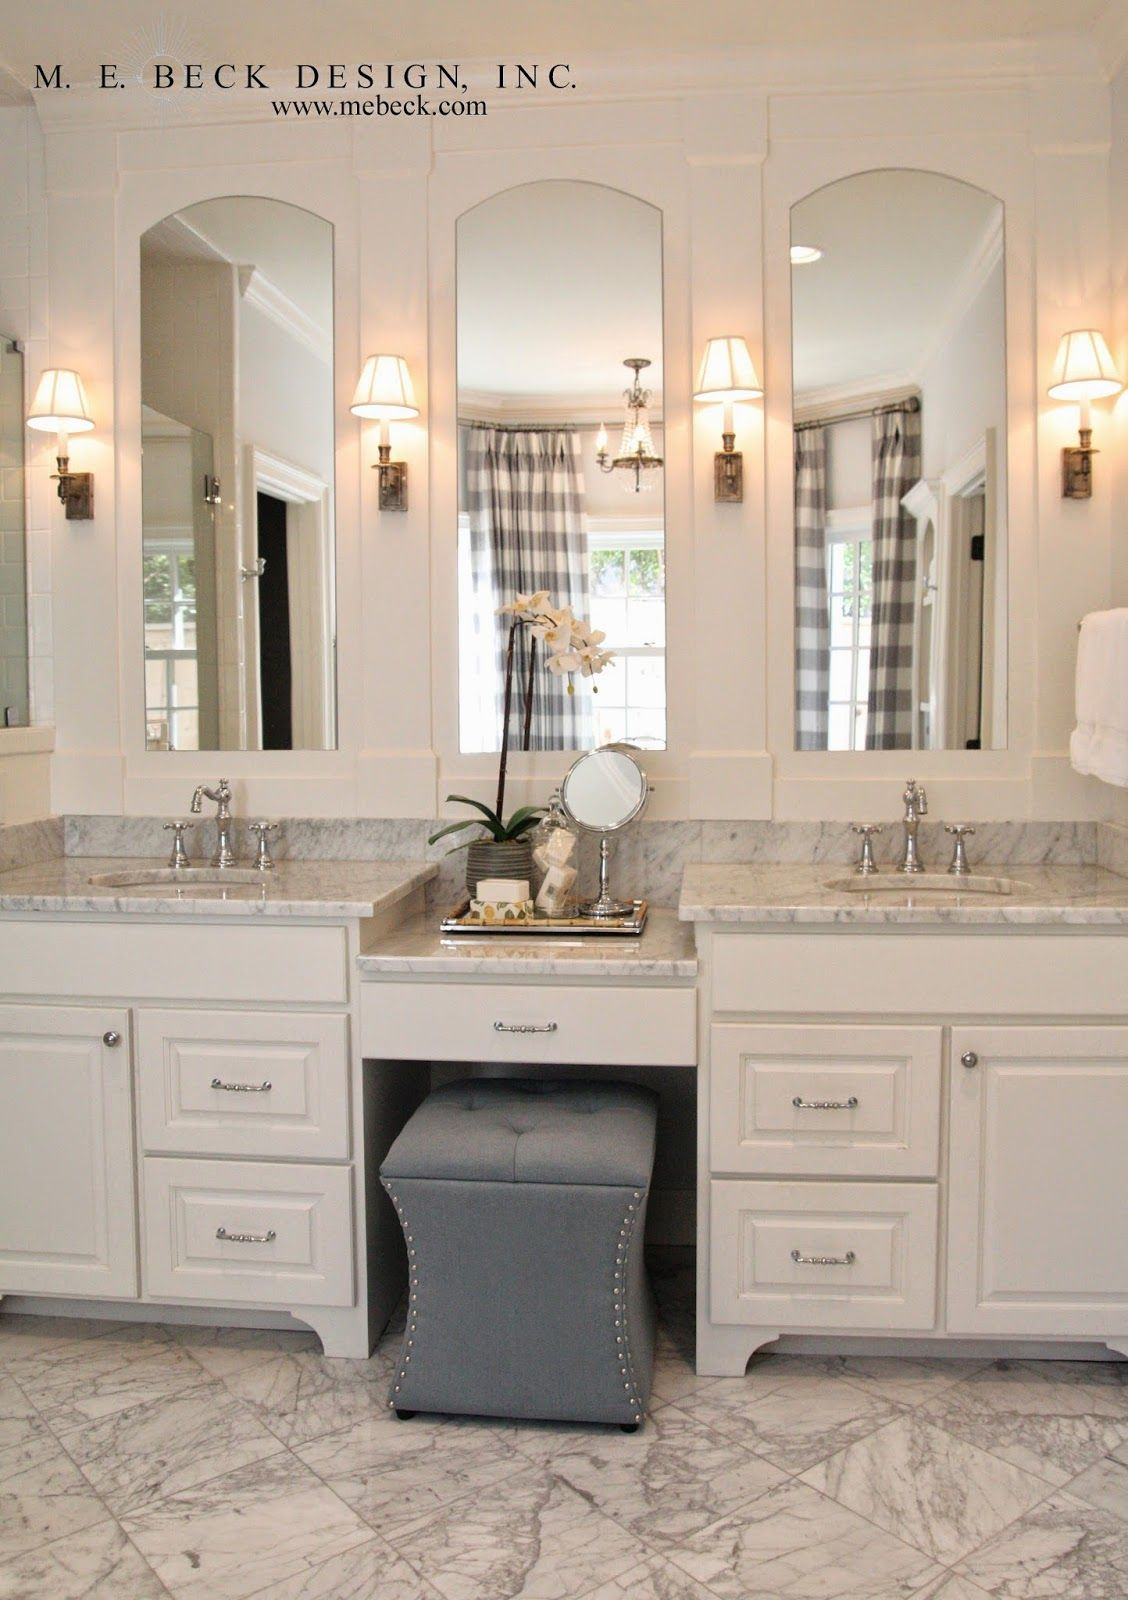 Live Beautifully Center Hall Colonial Master Bath Vanity And Sinks Master Bath Vanity Master Bath Remodel Center Hall Colonial